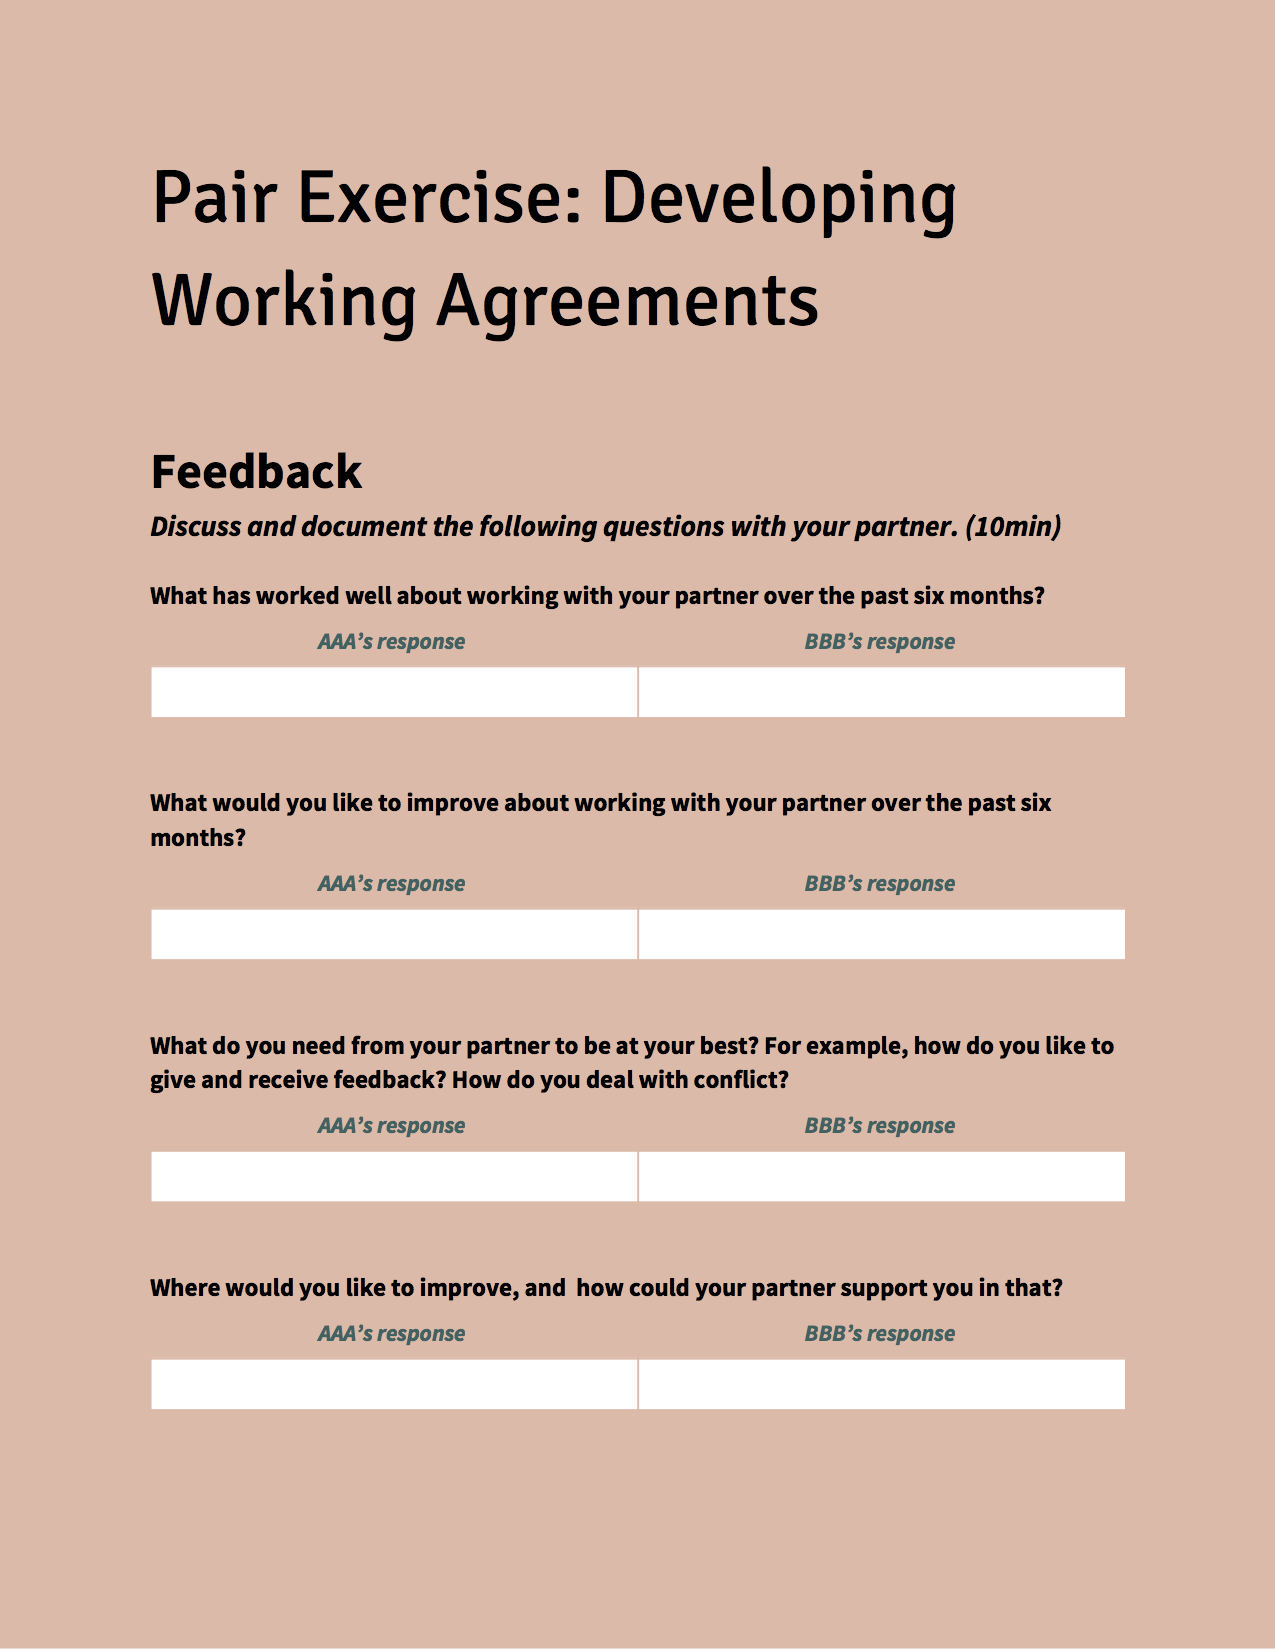 Toolkit: Working Agreements